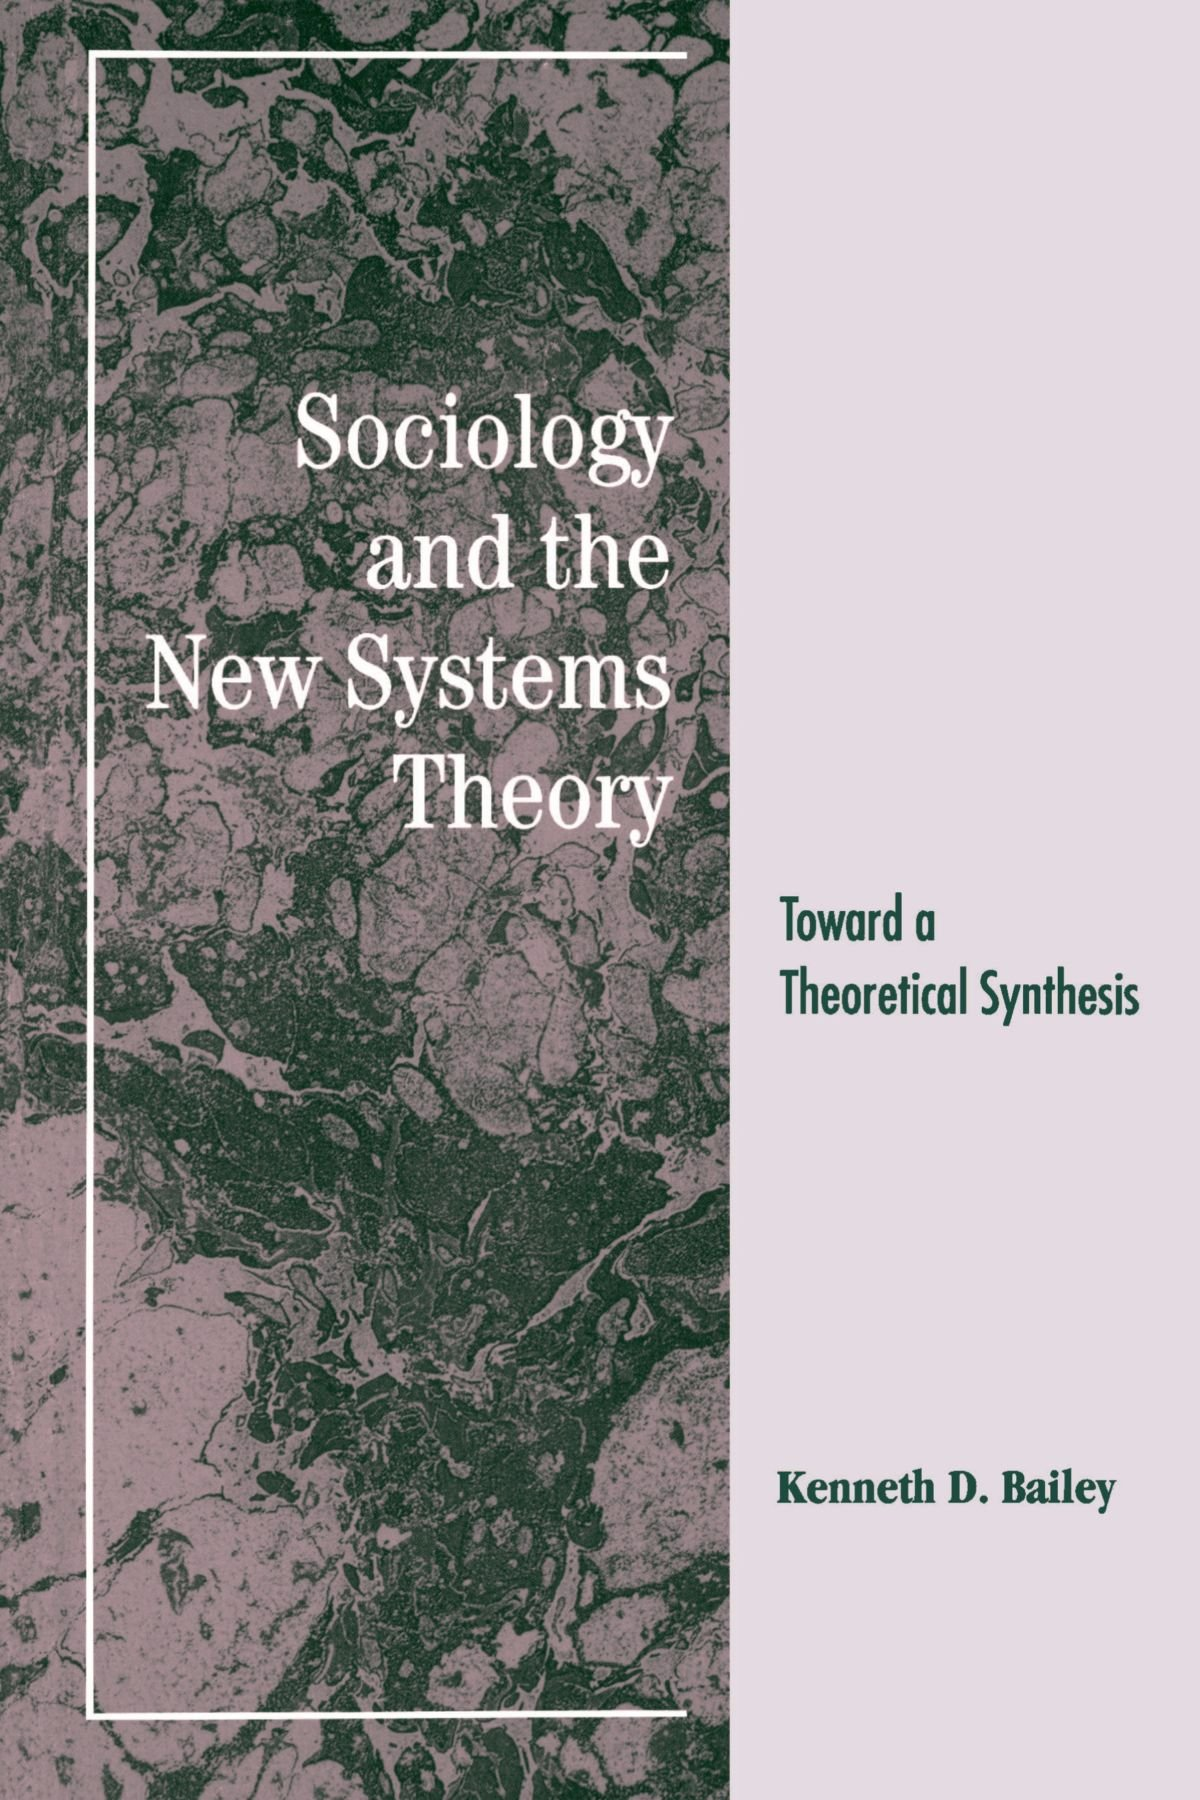 Sociology And The New Systems Theory: Toward A Theoretical Synthesis:  Kenneth D Bailey: 9780791417447: Amazon: Books